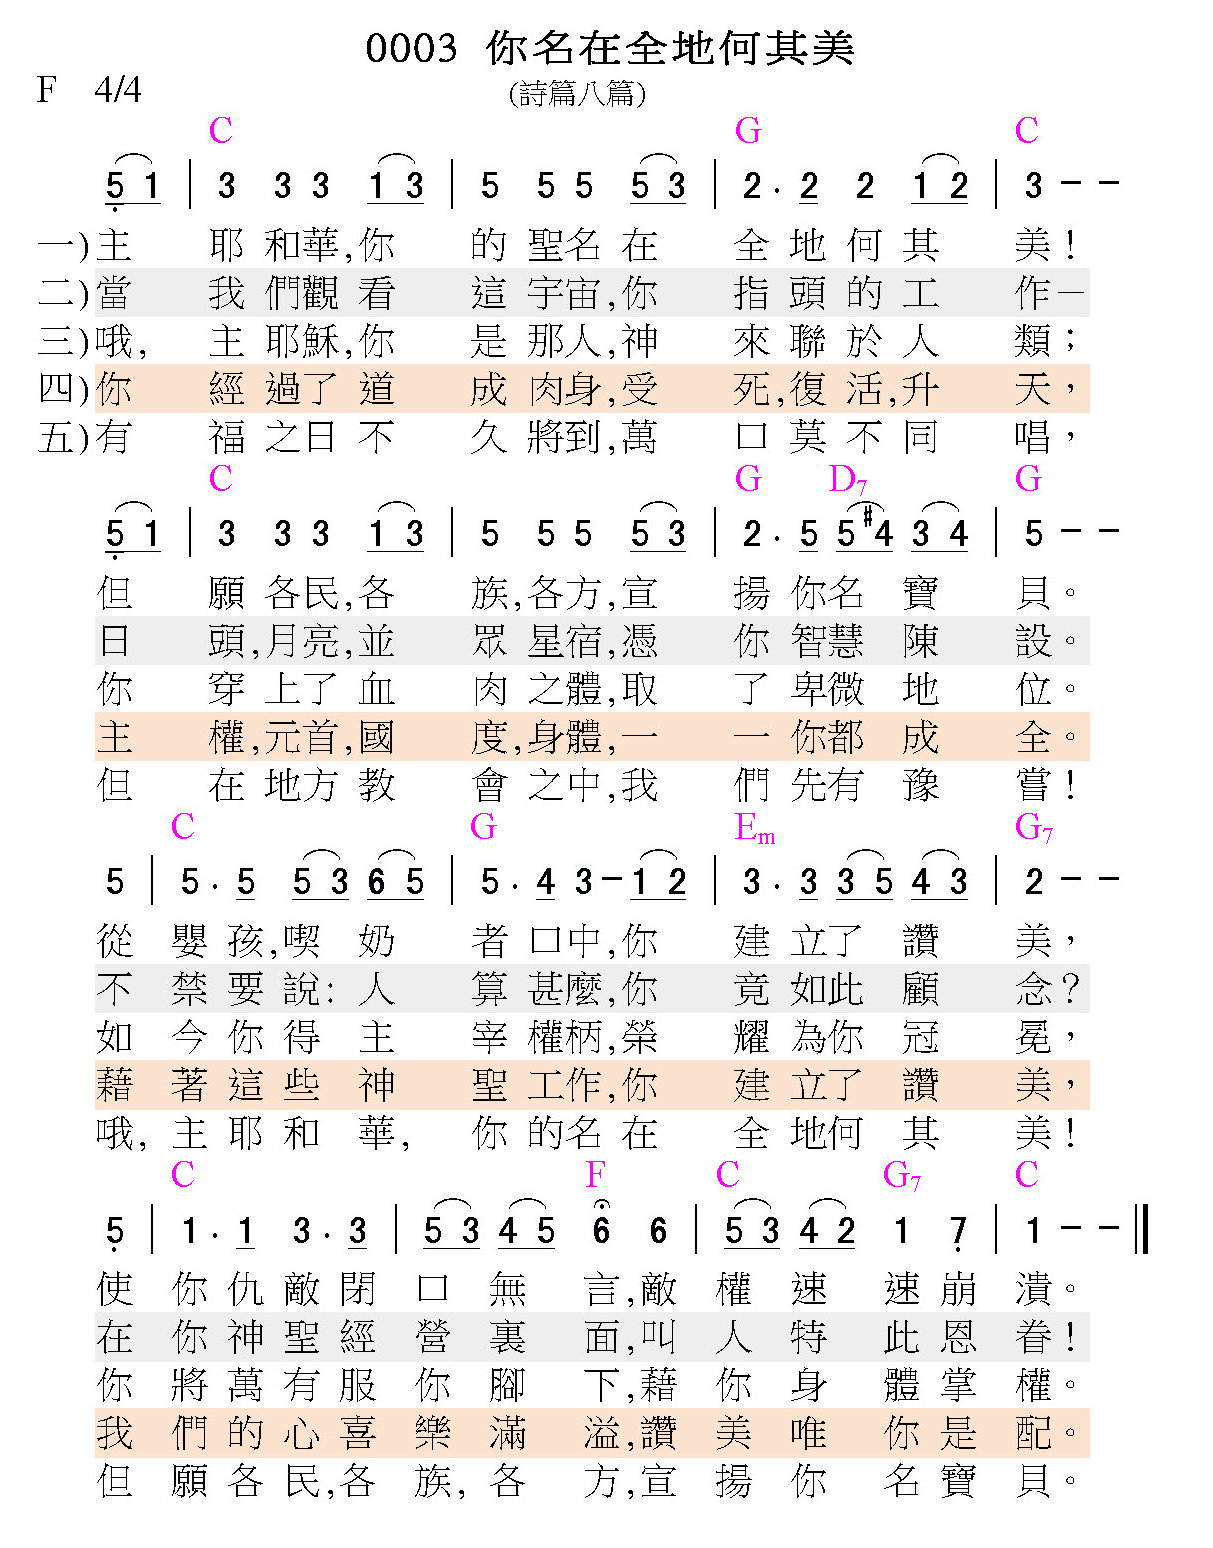 622 Best Images About Xyloto On Pinterest: 補充本詩歌目錄